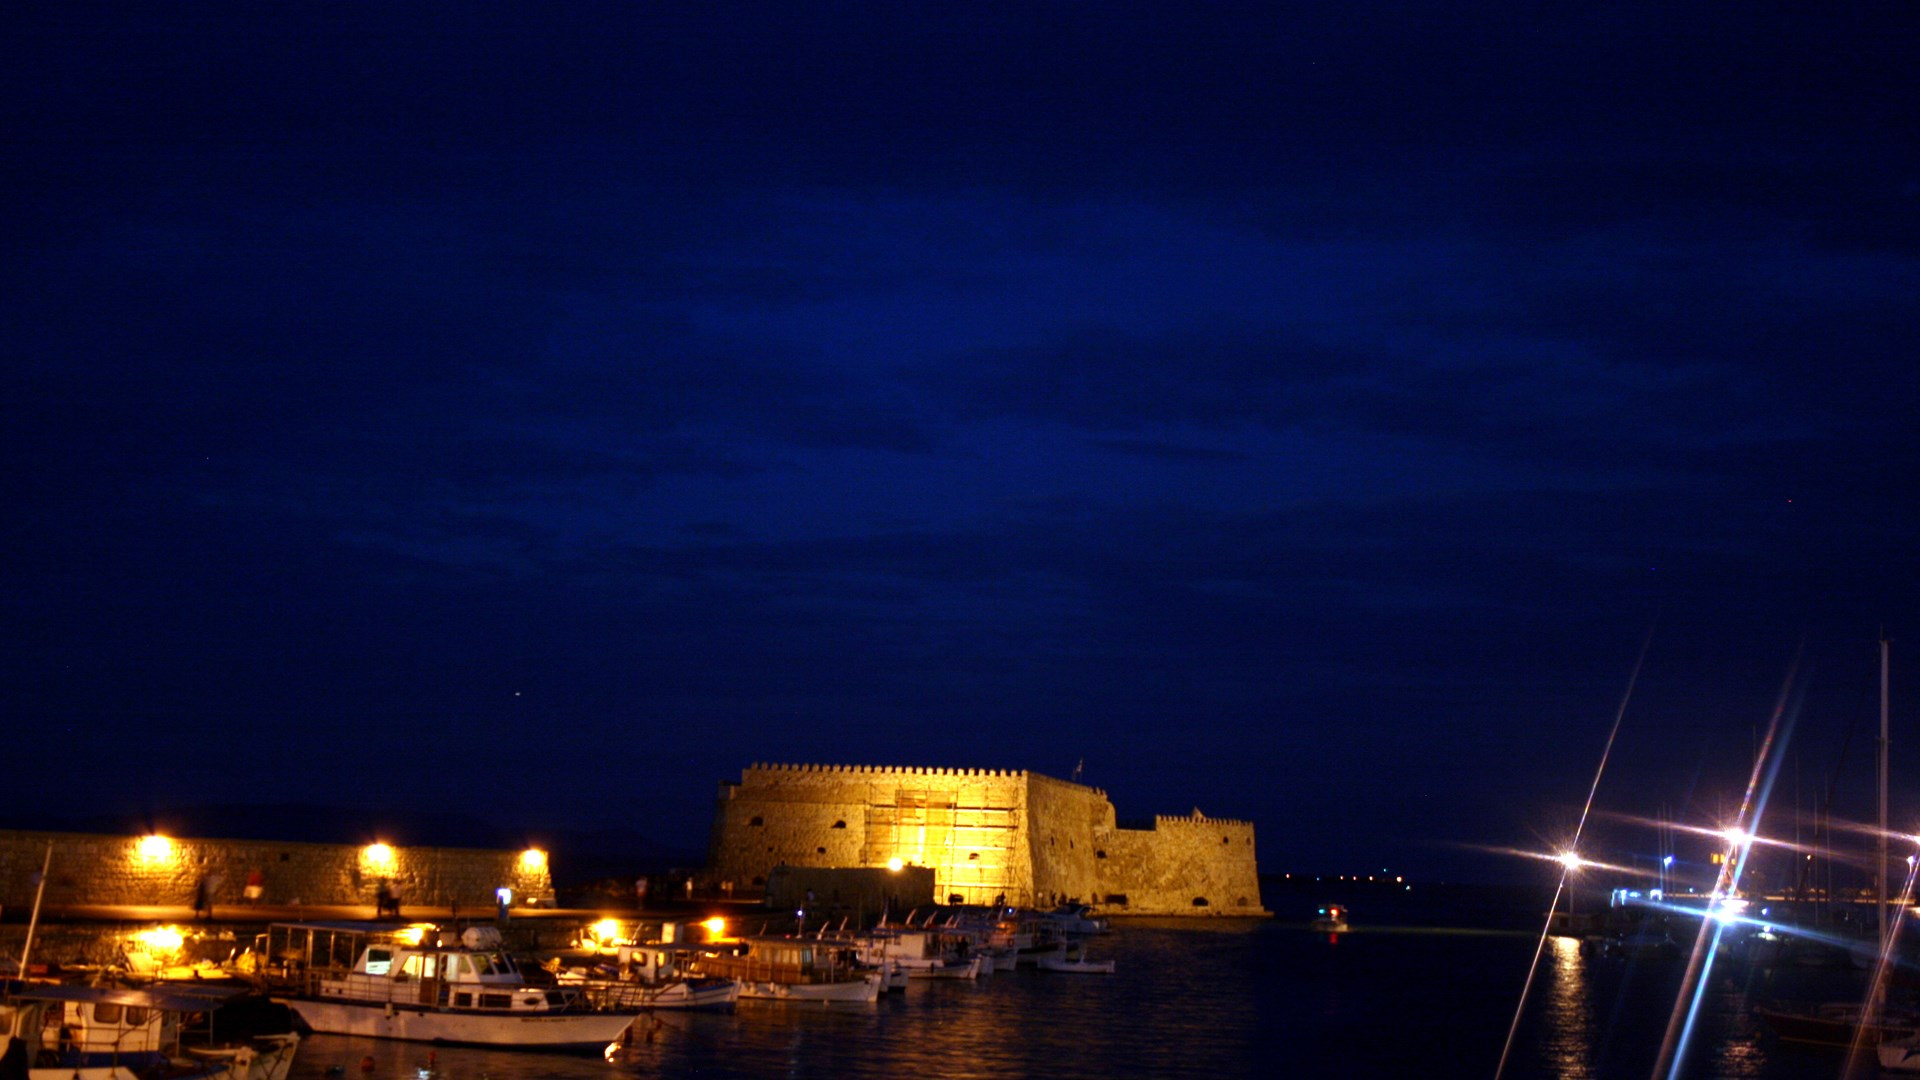 The Sea Fortress of Heraklion, Crete | 08 Sep 2014 | Alargo